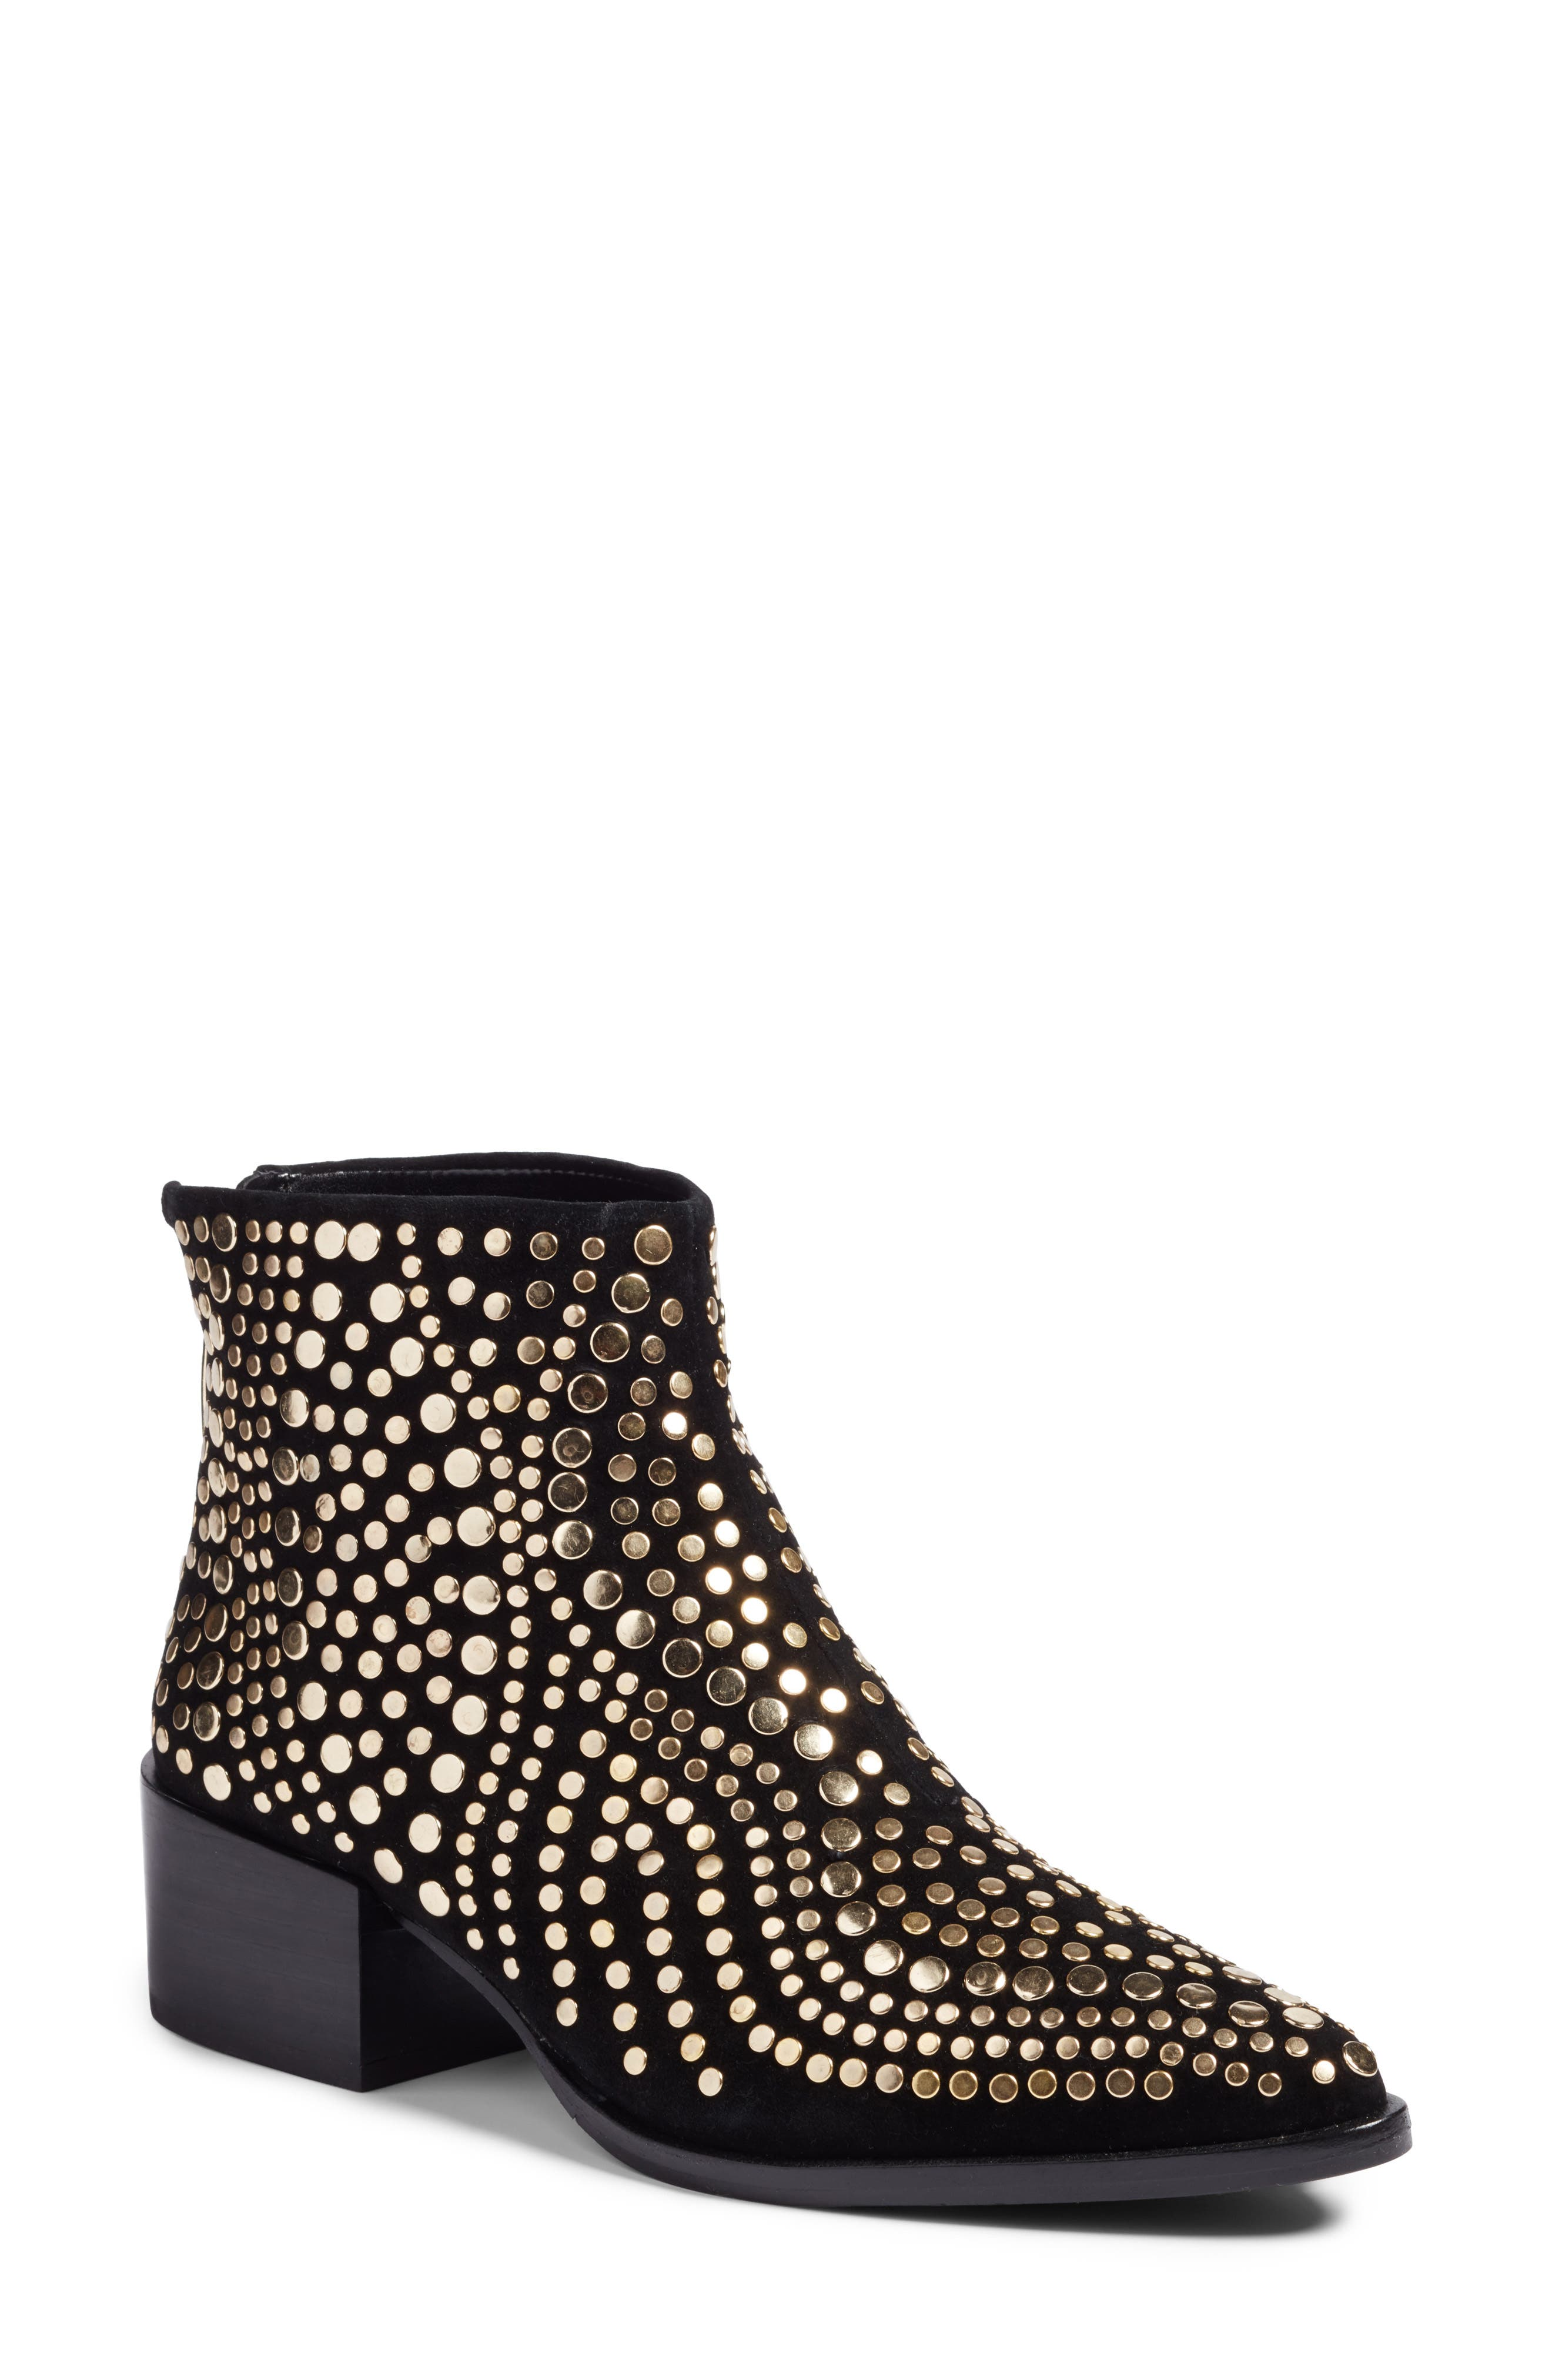 Edenny Studded Pointy Toe Bootie,                         Main,                         color, Black Suede